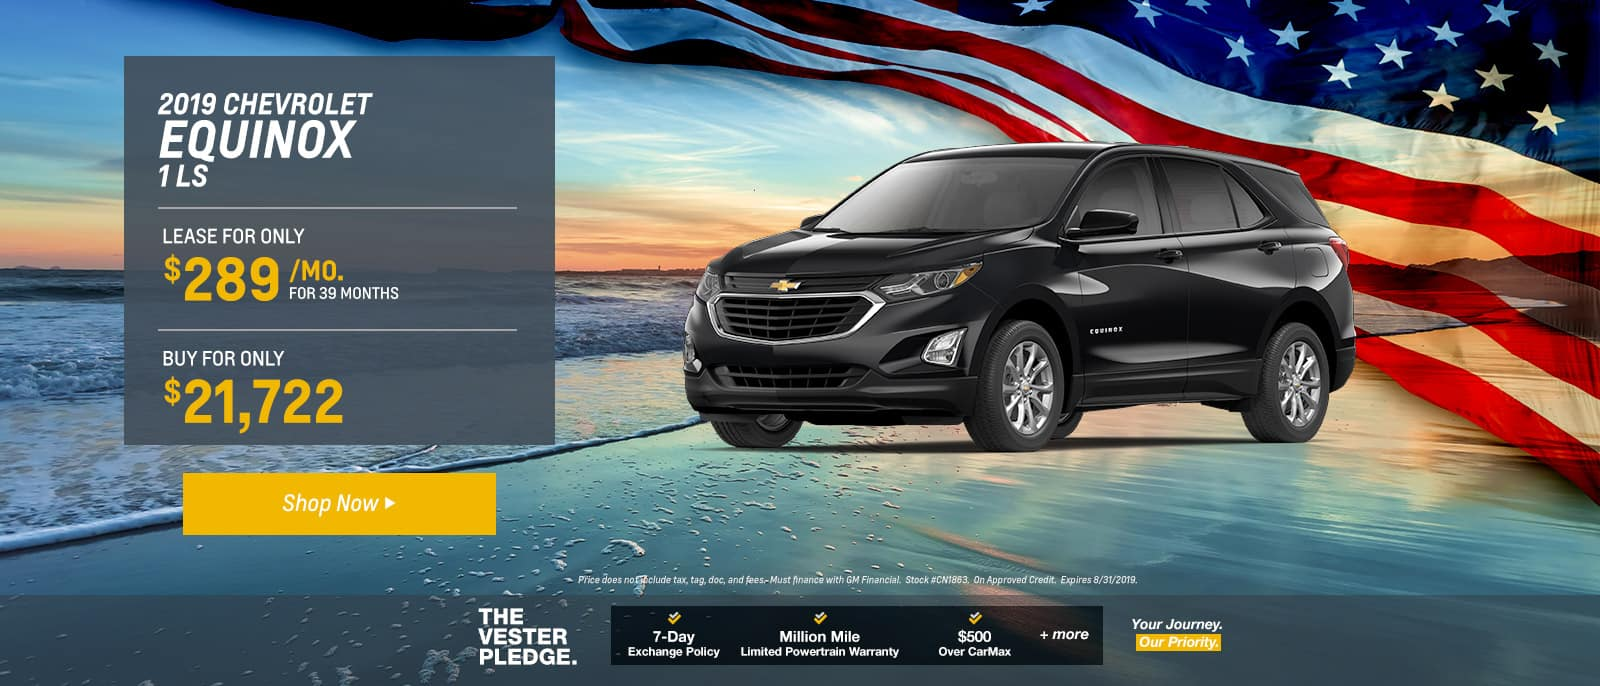 Hubert Vester Chevrolet | Chevrolet Dealership in Wilson, NC | chevrolet dealers in nc